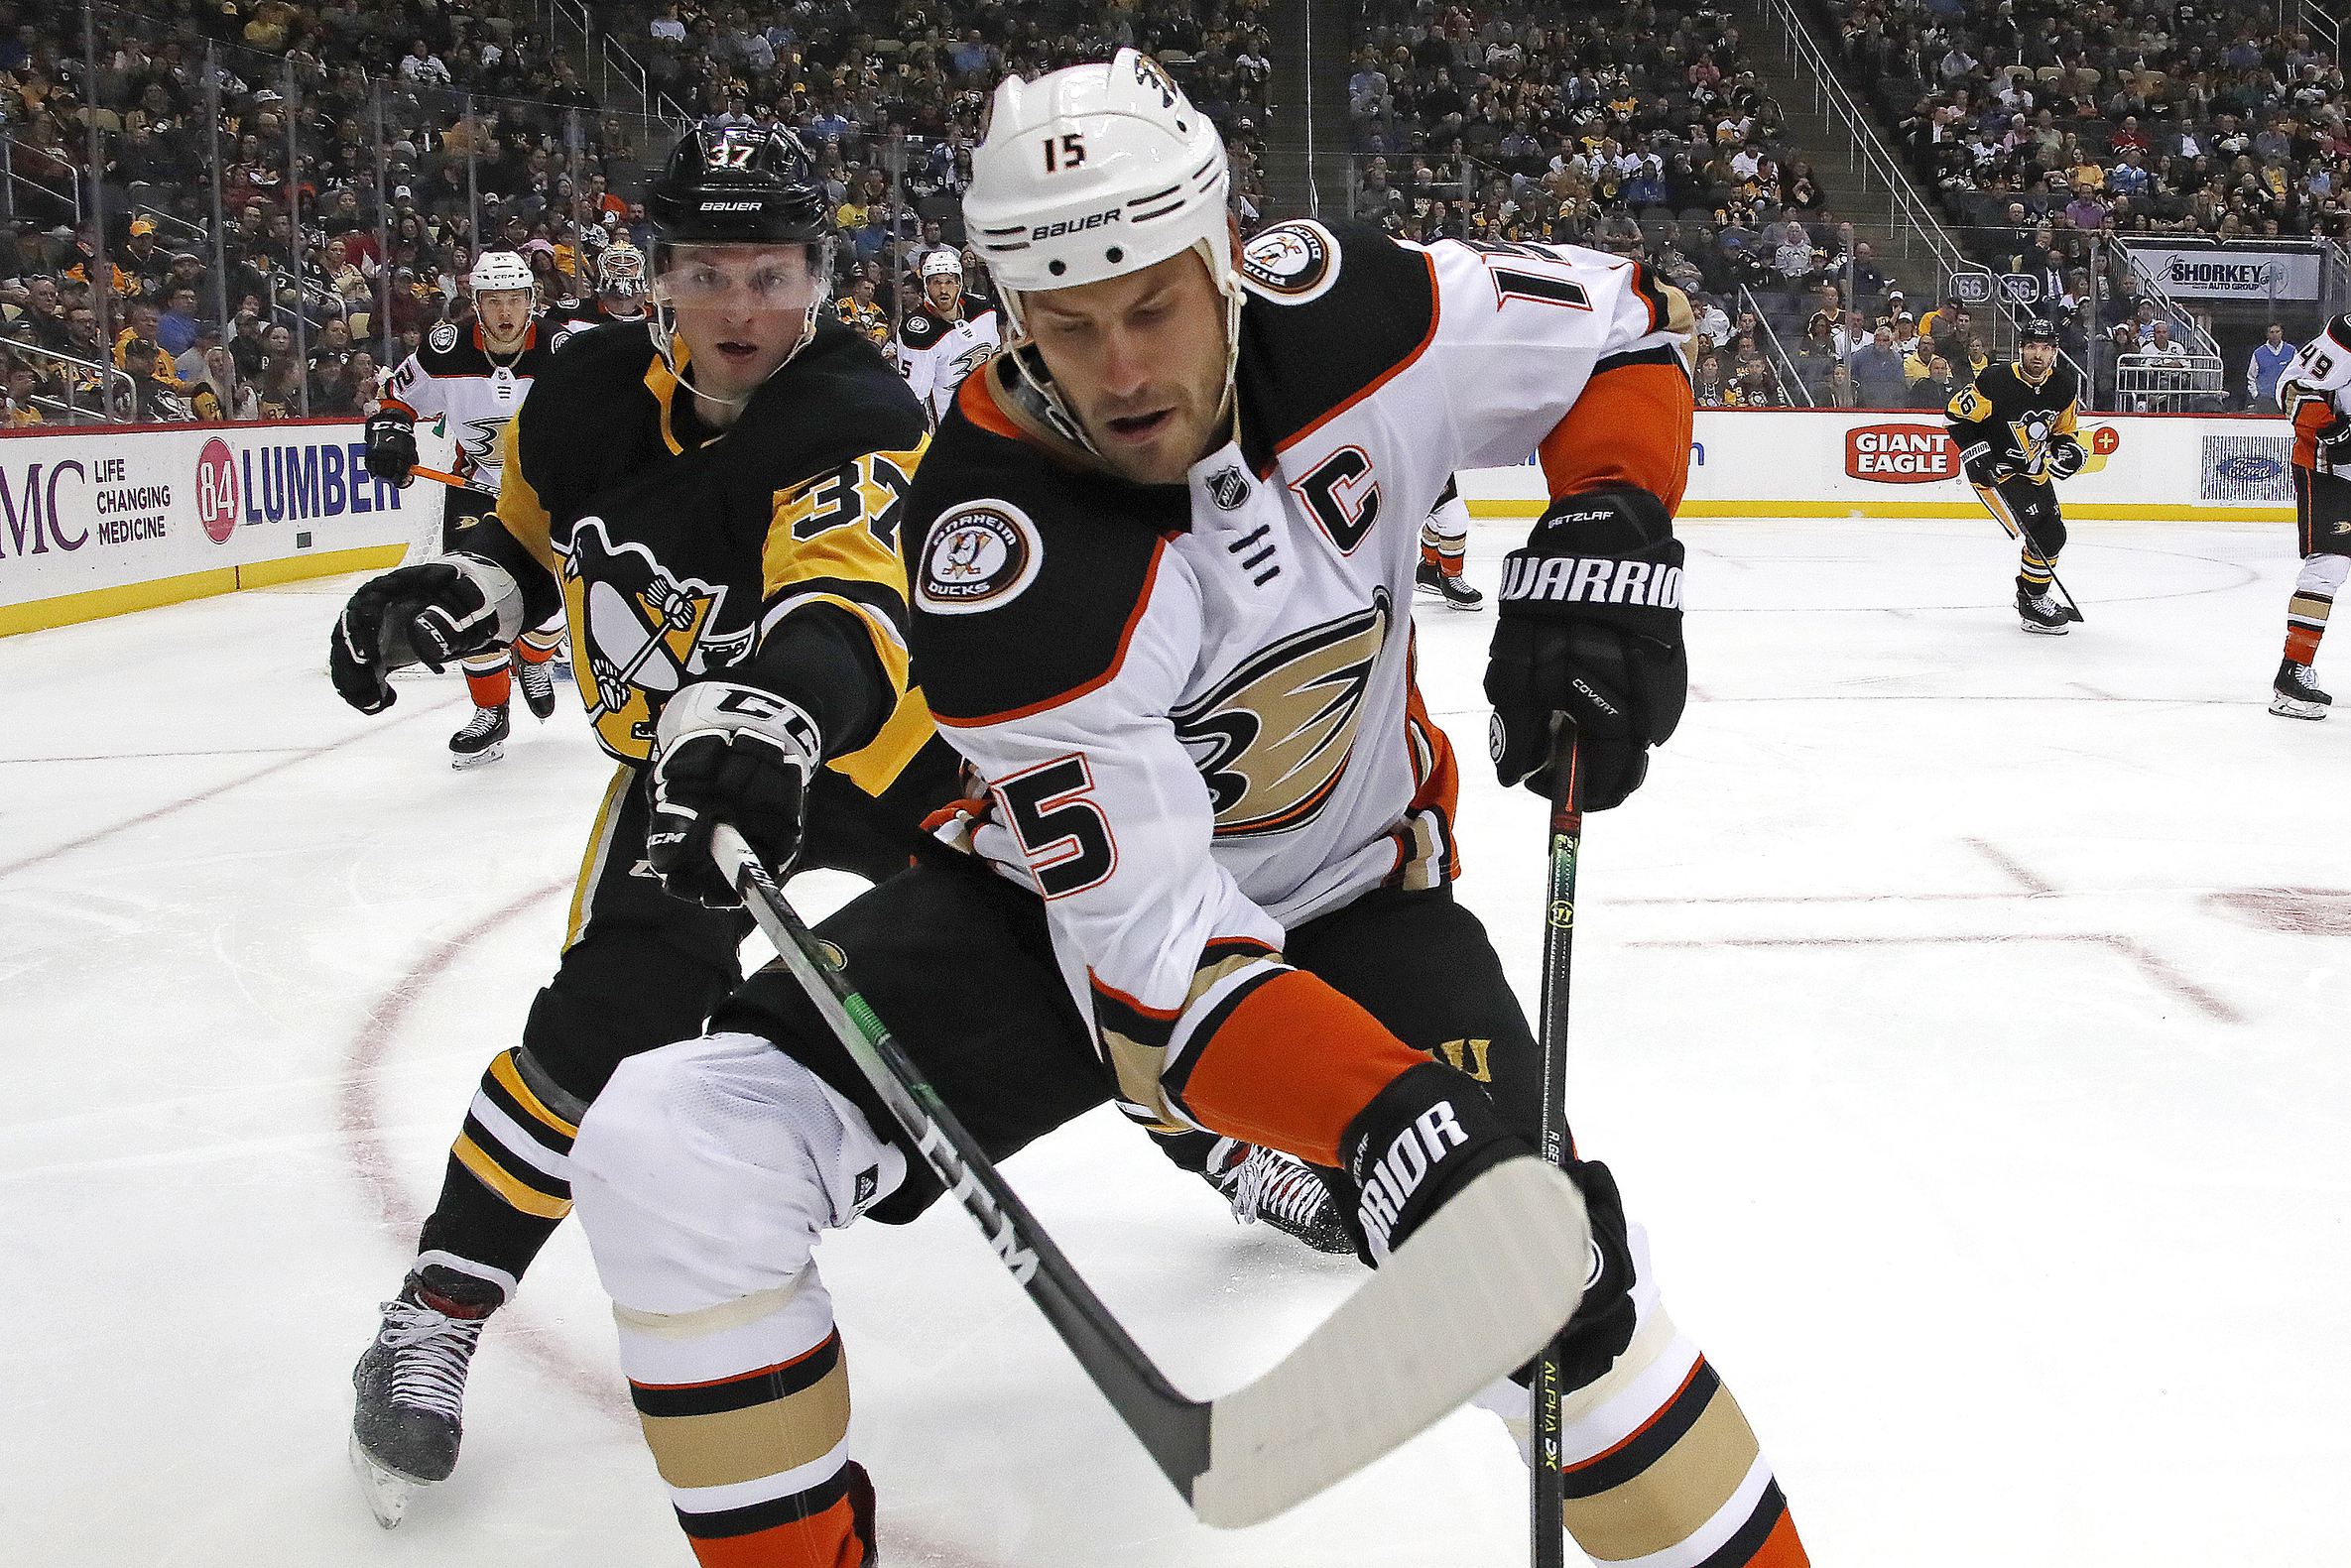 Guentzel's third-period goal gives Pens 2-1 win over Ducks